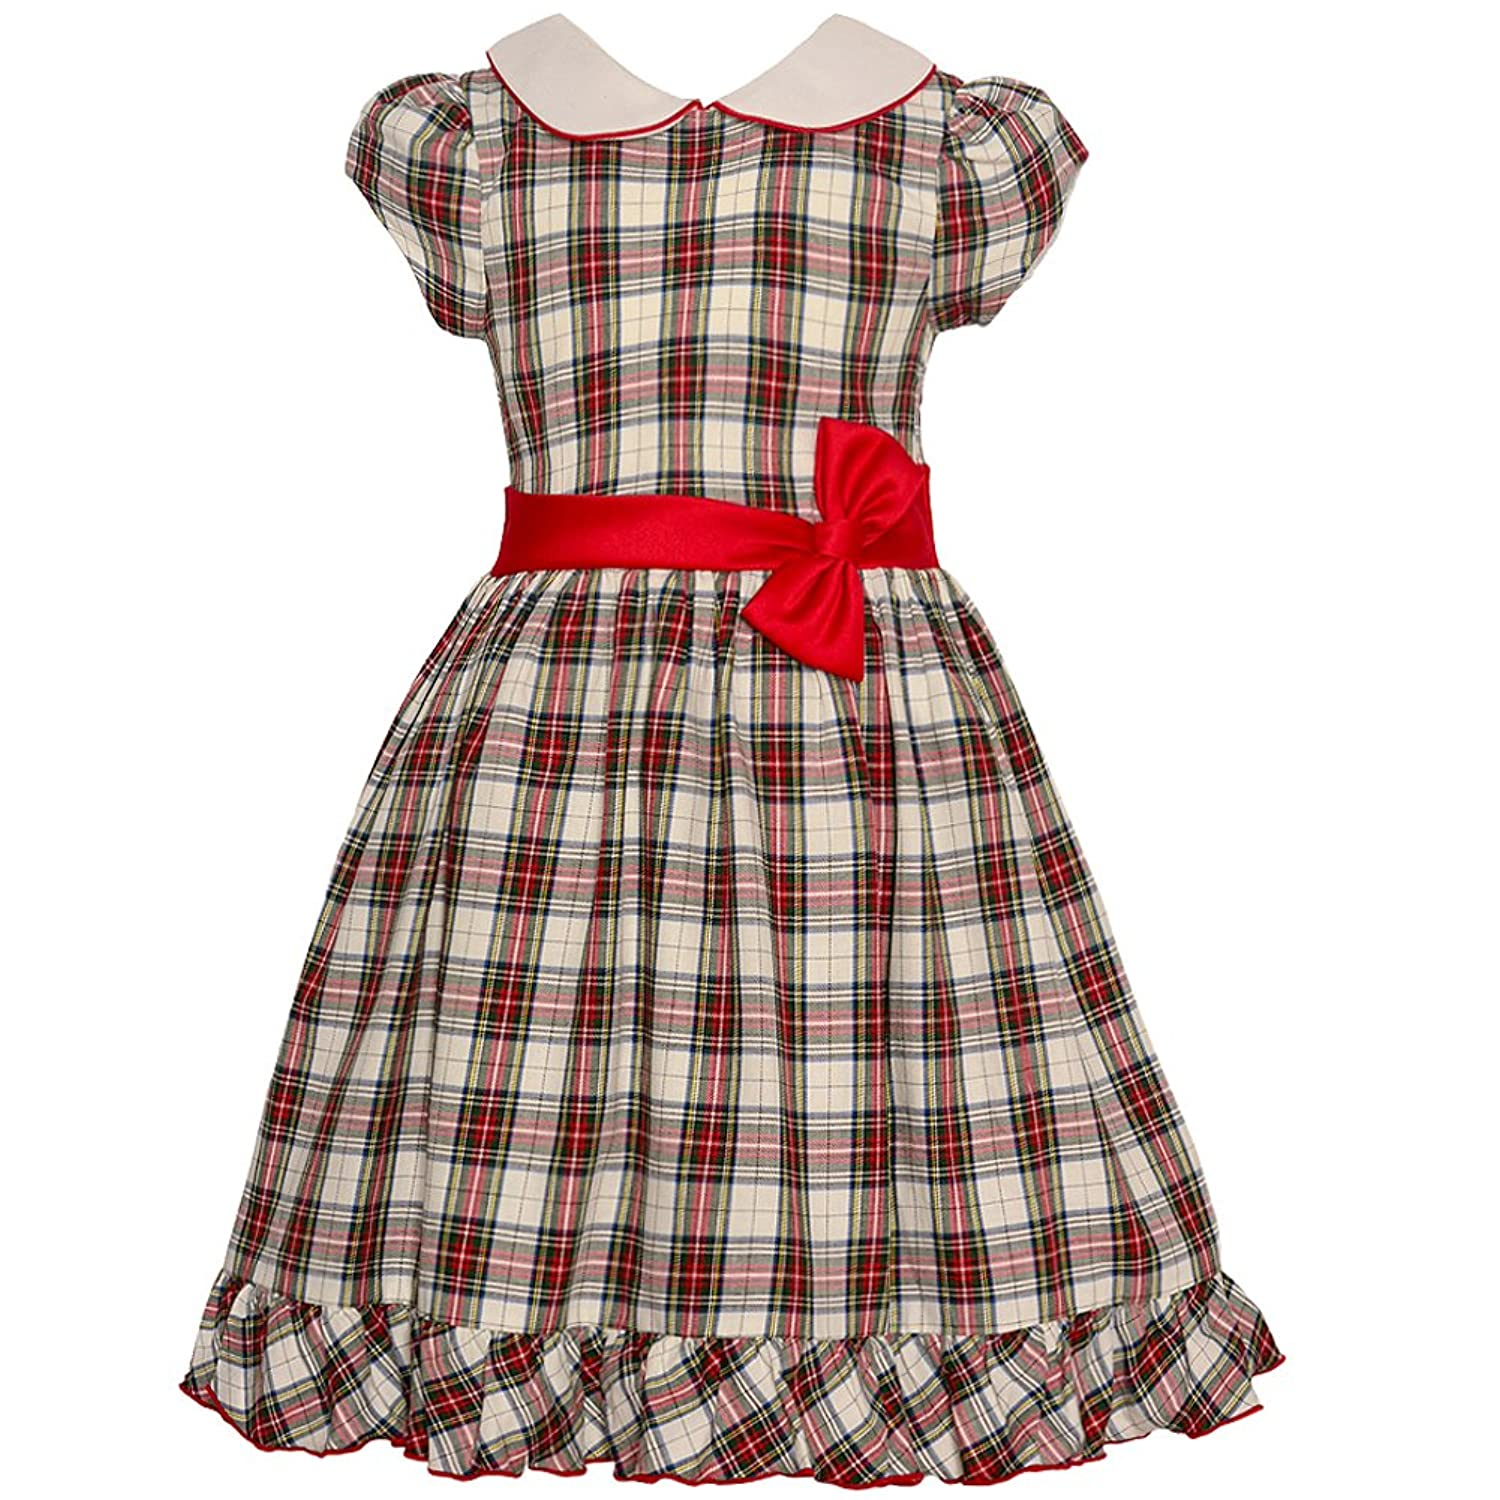 Kids 1950s Clothing & Costumes: Girls, Boys, Toddlers Bonnie Jean Girls Collared Cotton Dress $39.20 AT vintagedancer.com